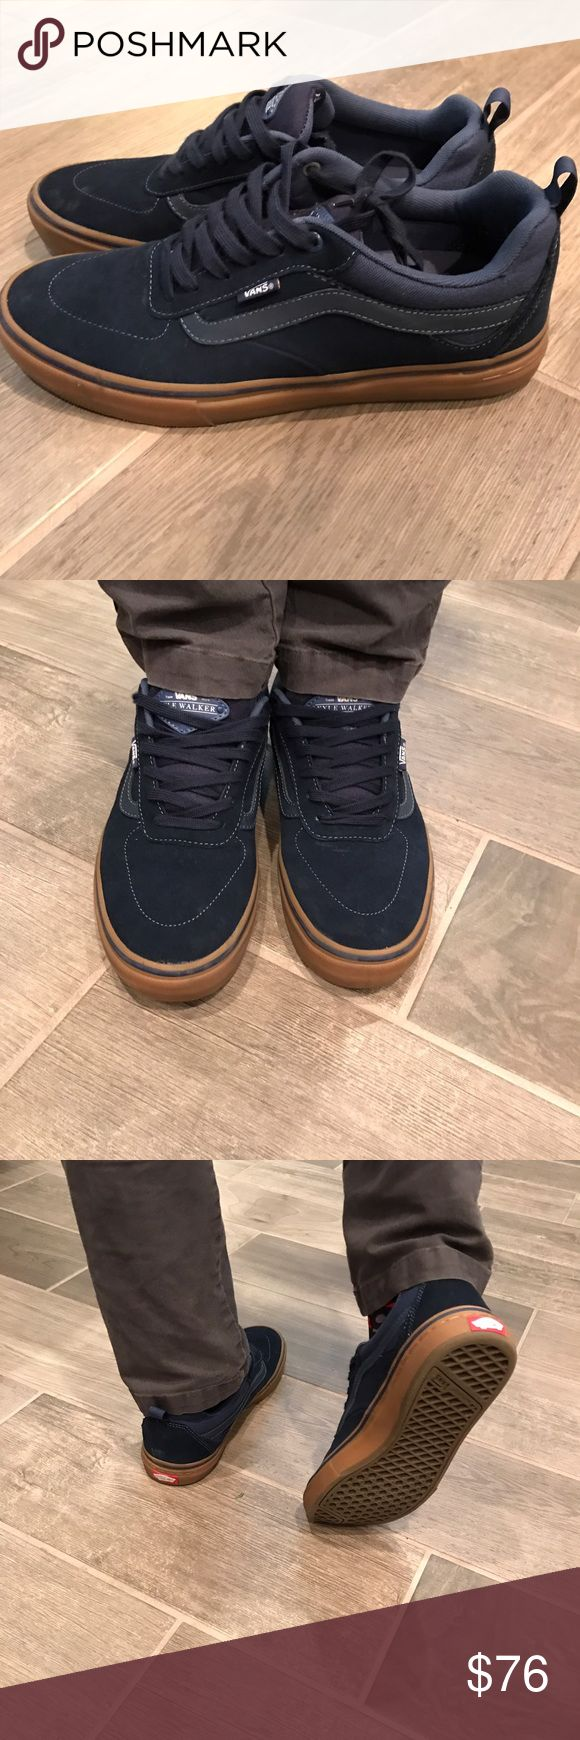 Kyle Walker Edition Navy Blue Vans Worn for only a few hours. Got the wrong size! True to size, size 10 men's. Vans Shoes Sneakers